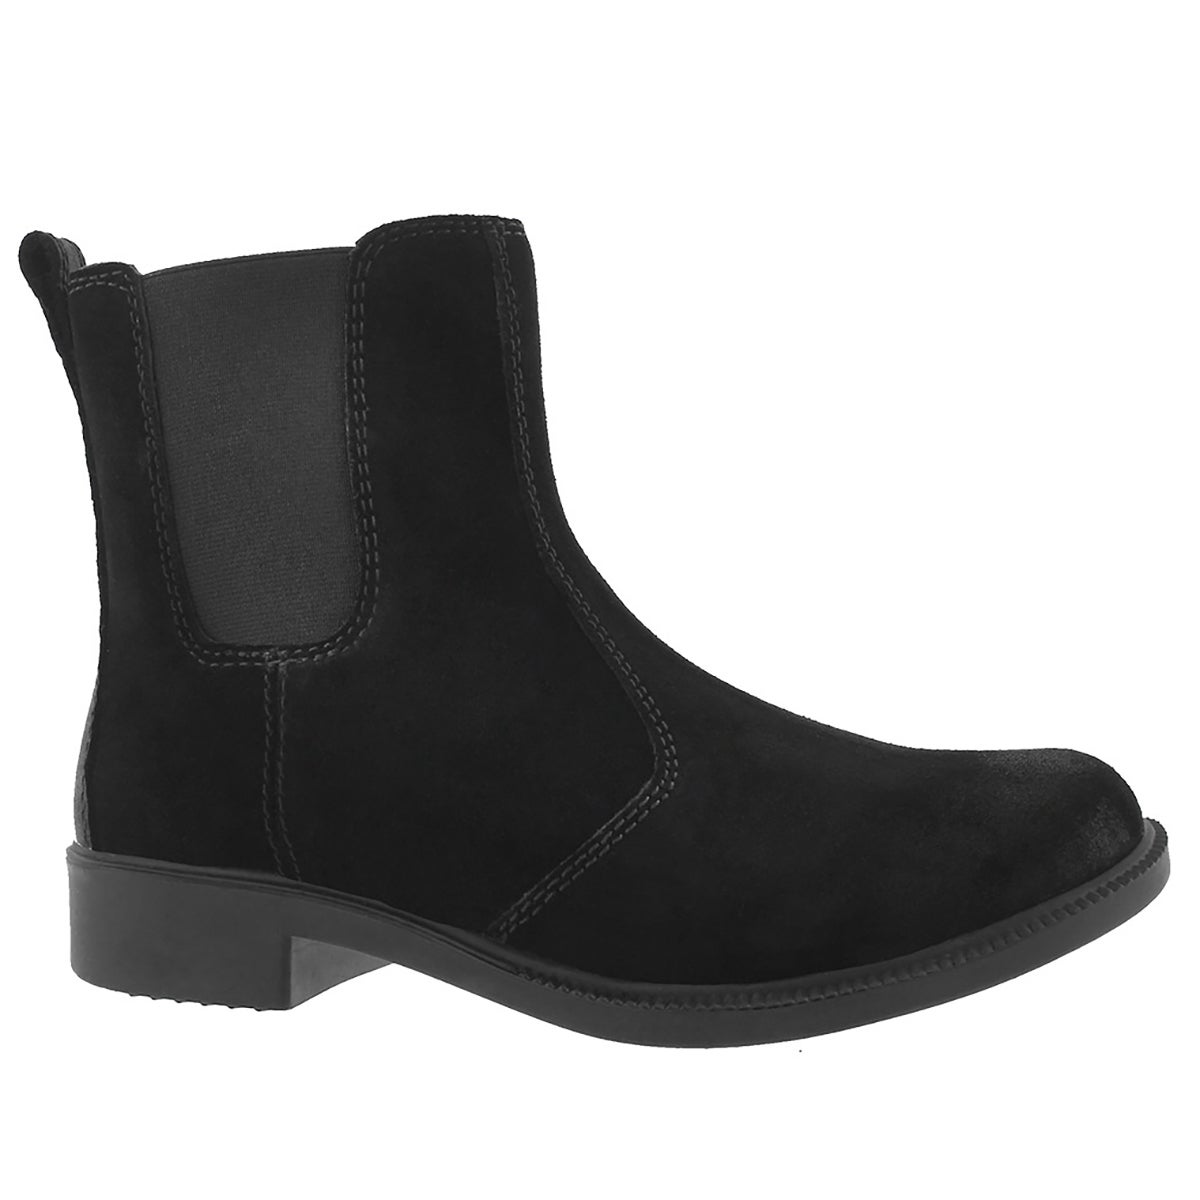 Women's BRIA black waterproof chelsea boots